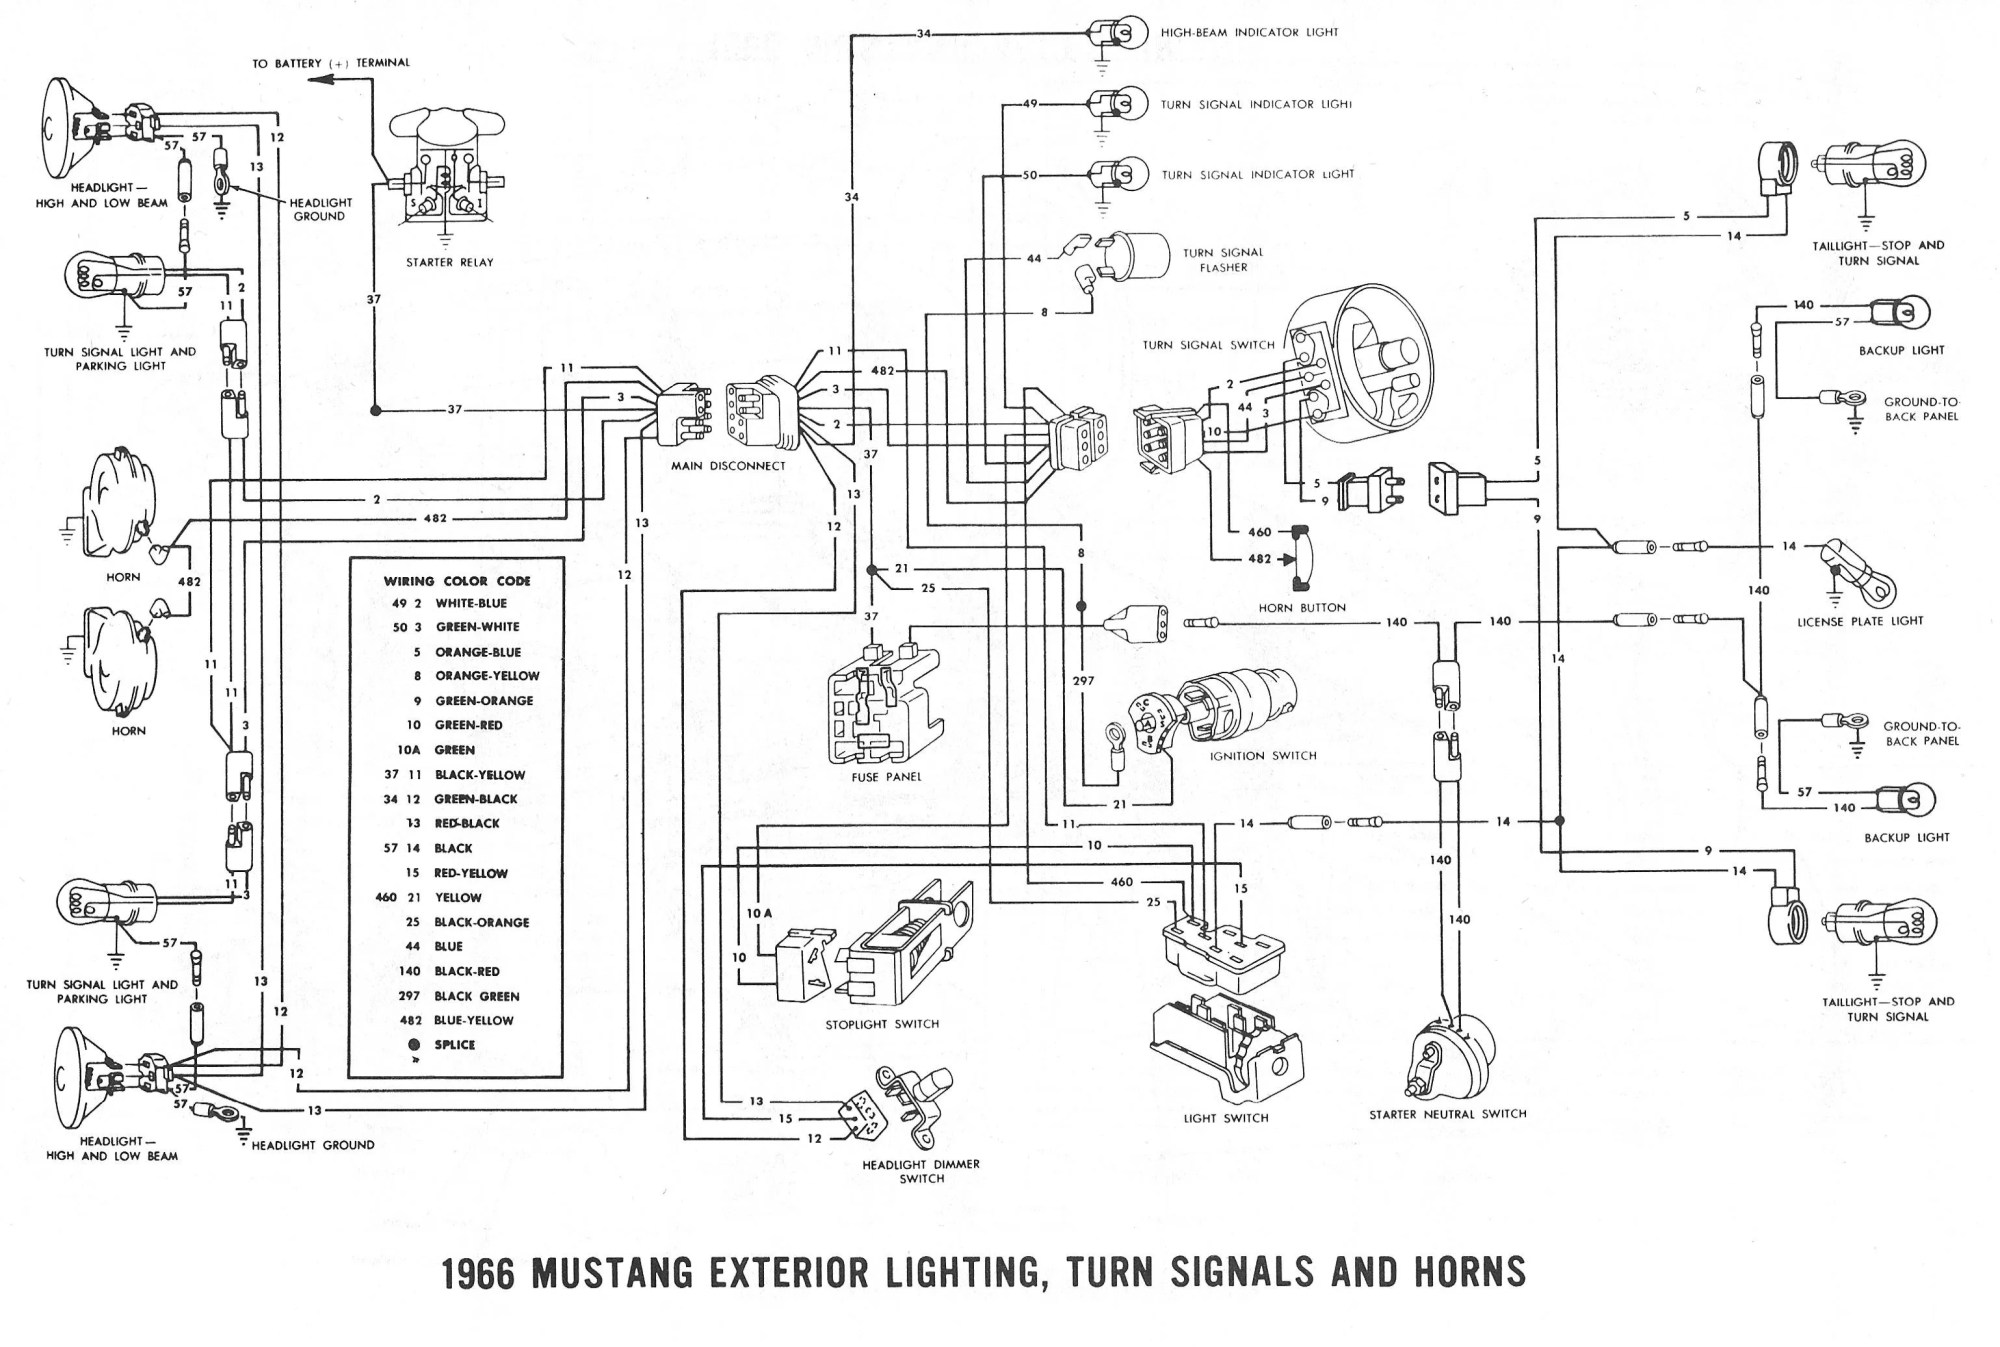 hight resolution of 1965 mustang wiring harness diagram wiring diagram inside 66 wiring harness diagram ford mustang wiring diagram